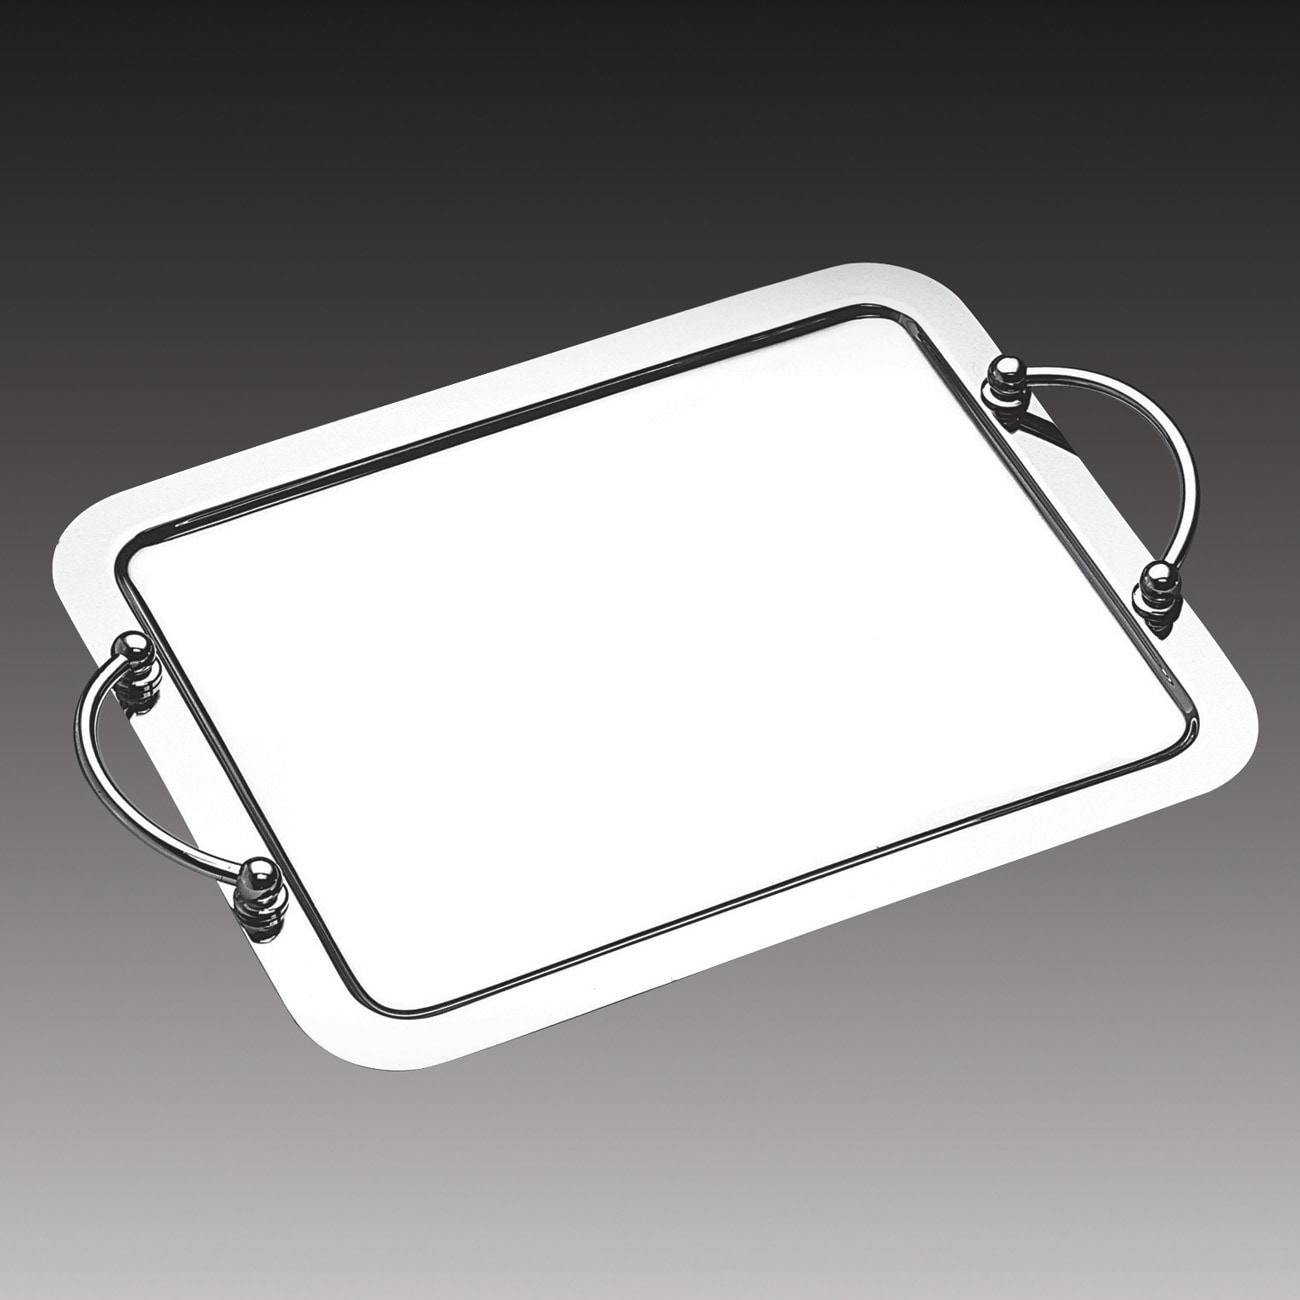 Wolff Ball Silvertone Stainless Steel 9.1-inch x 7.5-inch Large Serving Tray with Handles